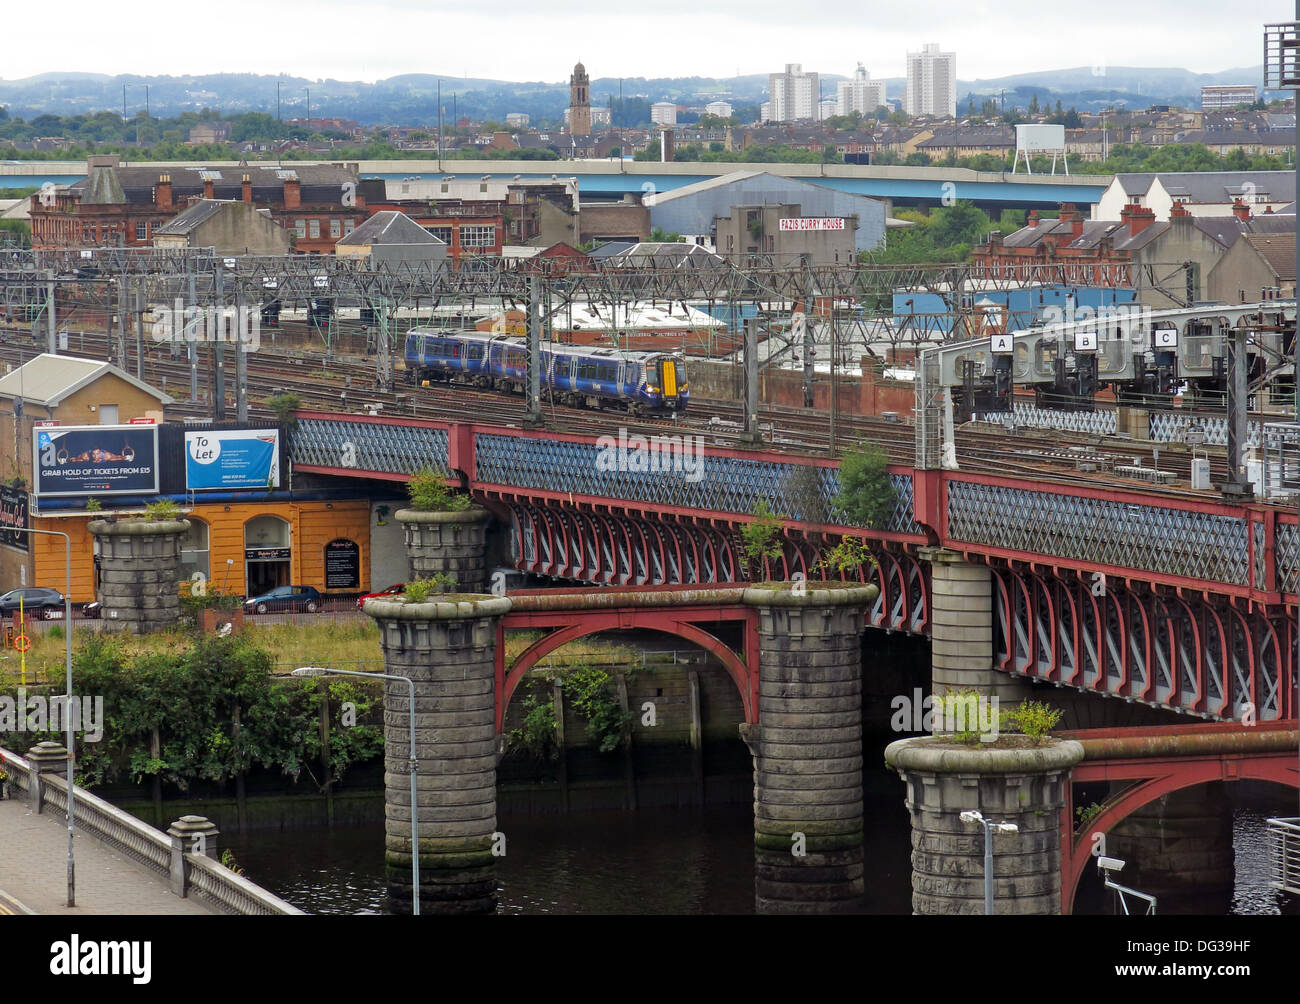 city,Clydeside,rail,railroad,railway,Scotrail,Abellio,Abelio,Bridge,at,Glasgow,Central,station,train,over,the,River Clyde,river,Scotland,UK,GB,Scottish,Scots,BR,British Rail,British,Great Britain,transport,infrastructure,Victorian,WCML,west,coast,main,line,travel,tourism,GoTonySmith,Buy Pictures of,Buy Images Of